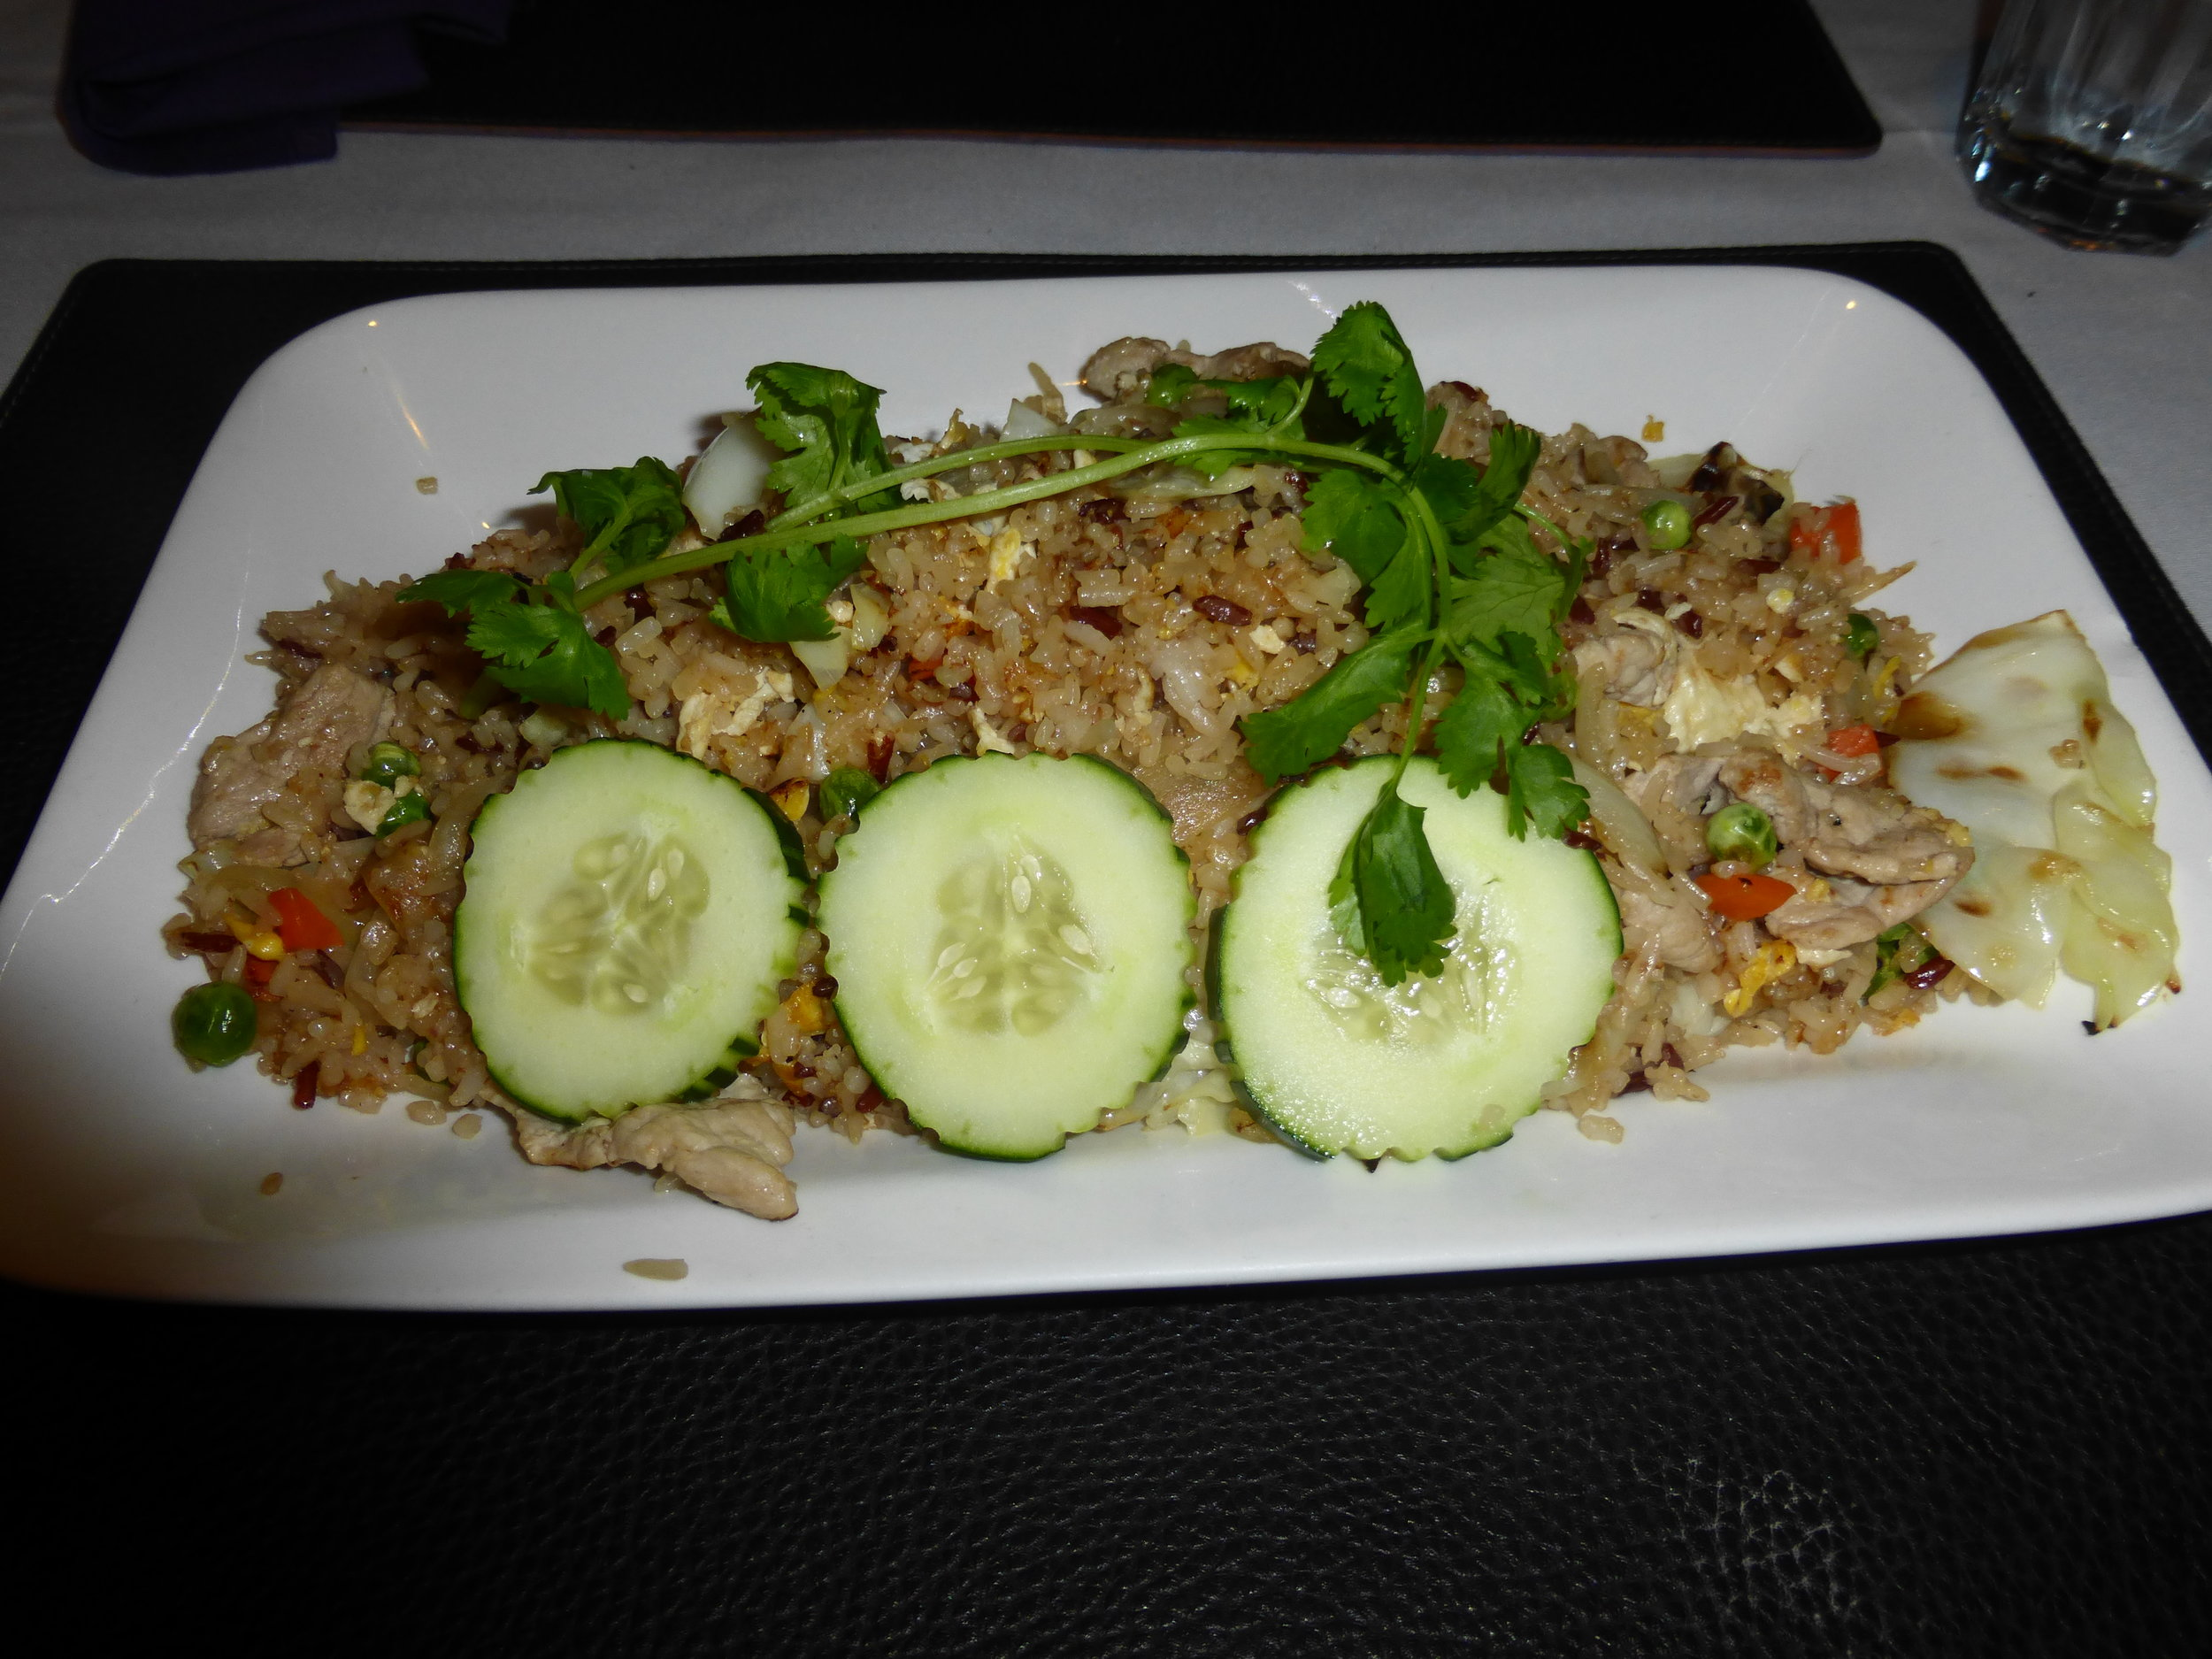 My  Chicken Fried Rice  had a tasty balance of meat and vegetables, and was enough for leftovers.